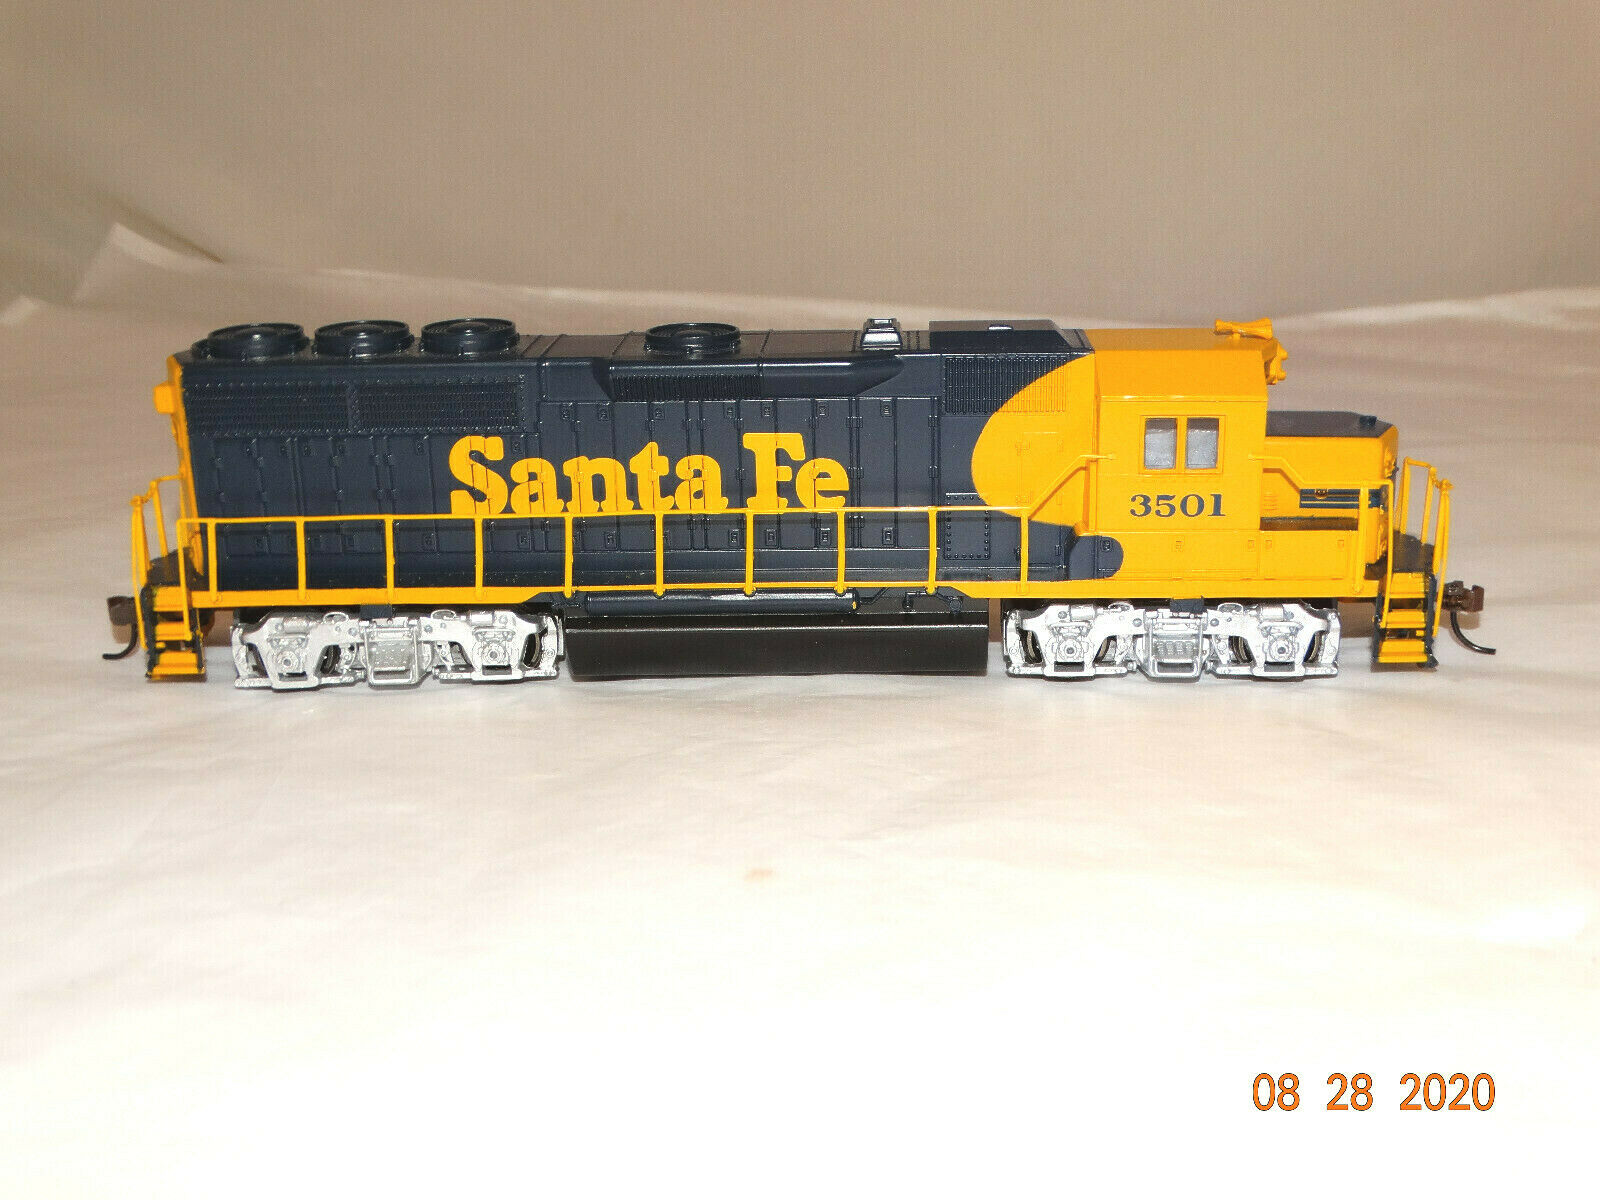 Bachmann 0567 Ho Scale Santa Fe Emd Gp40 Diesel Locomotive Rd 6067 For Sale Online Ebay